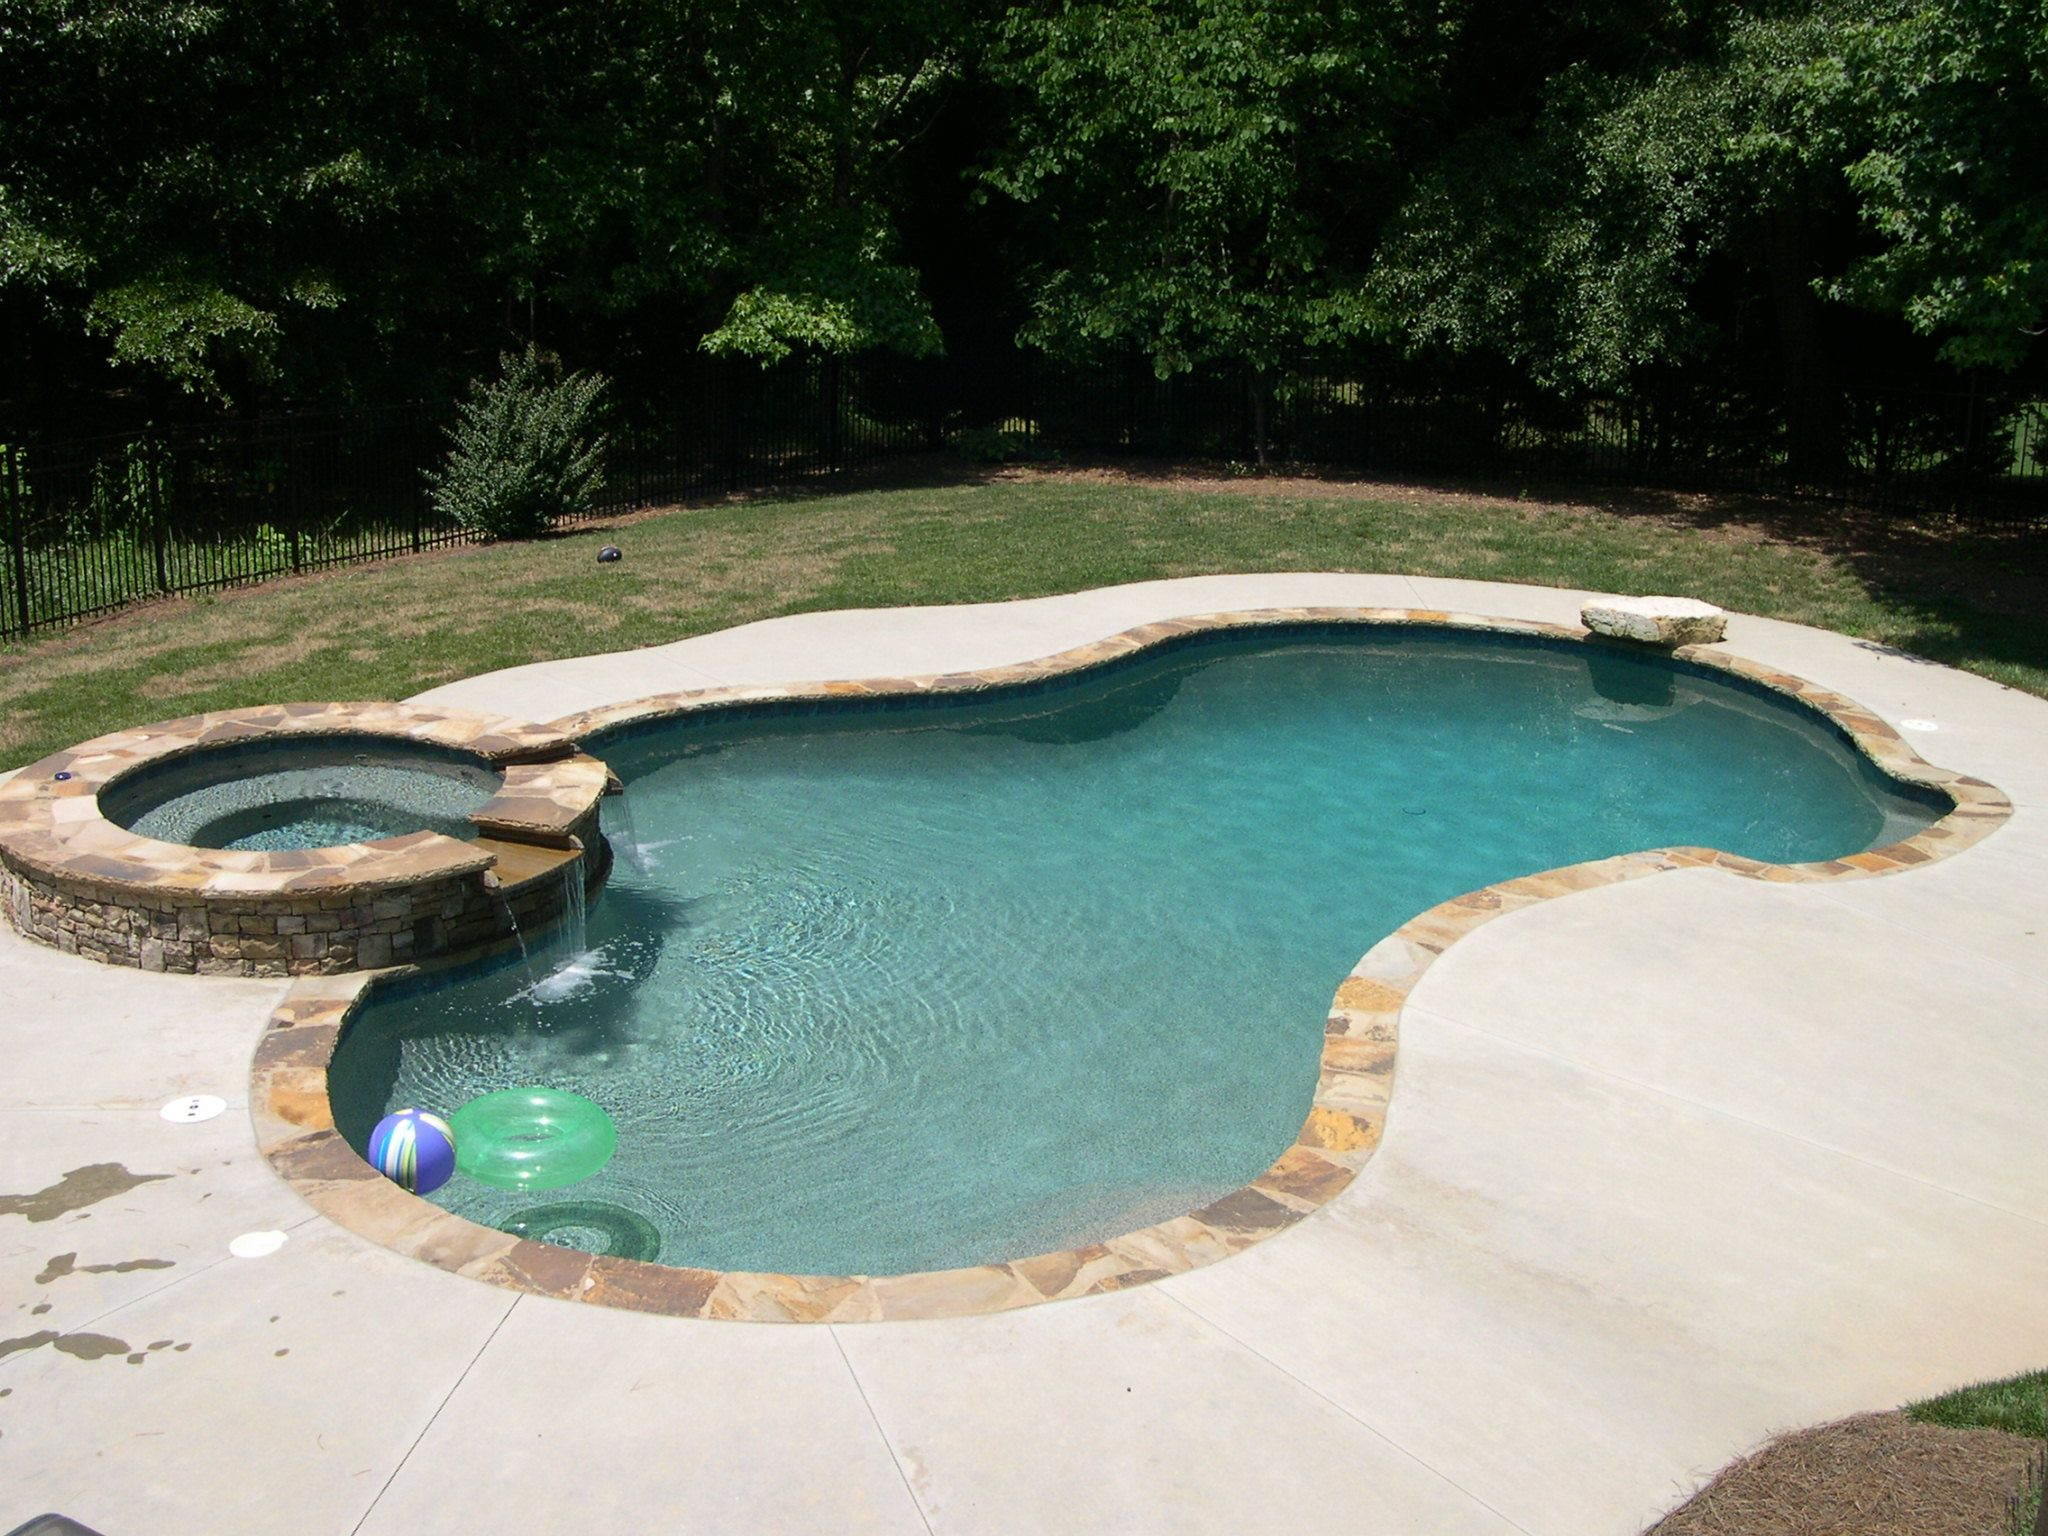 Designs For Small Yards' Small Pool Designs Perth and ...